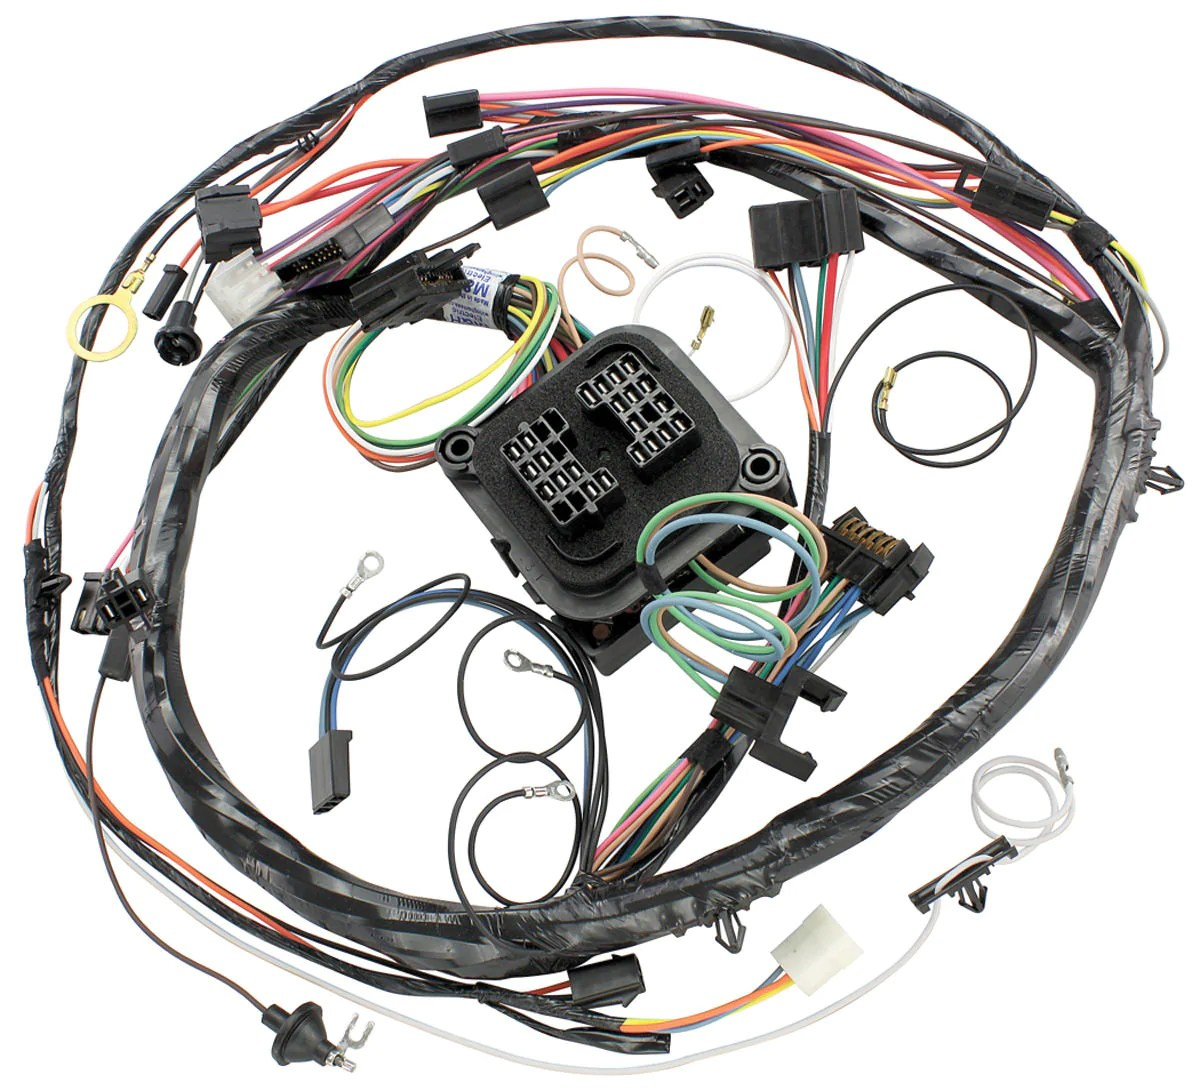 small resolution of 1970 chevelle and el camino ss dash harness with factory gauges hi chevelle dash wiring harness main for cars with factory gauges 1970